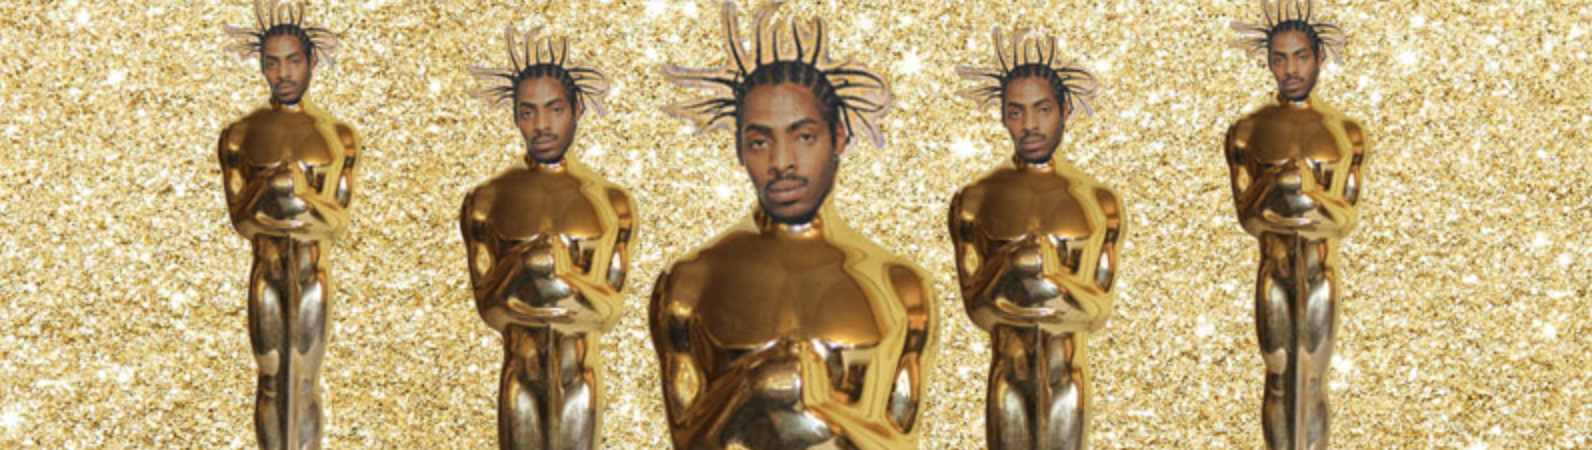 Coolio Awards: The Best and Worst of 2018 Pop Culture